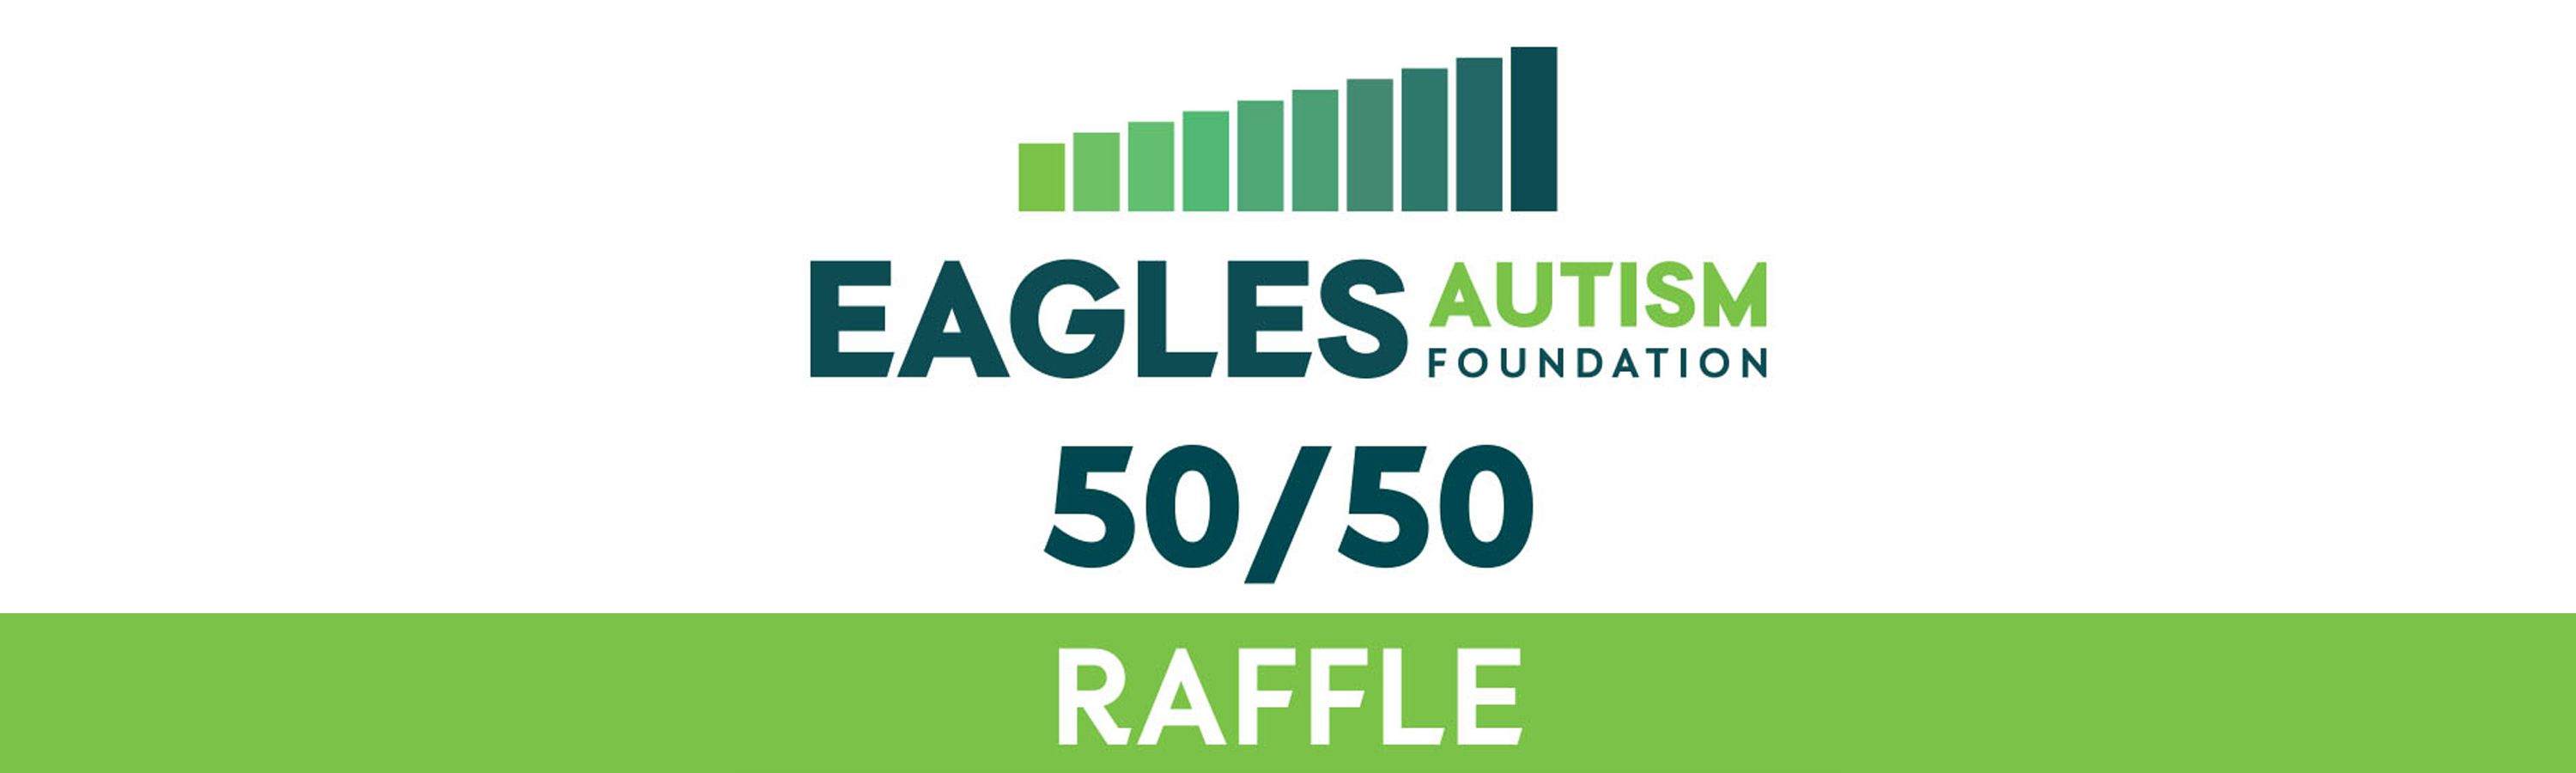 Eagles-Autism-Foundation-Header-RGB